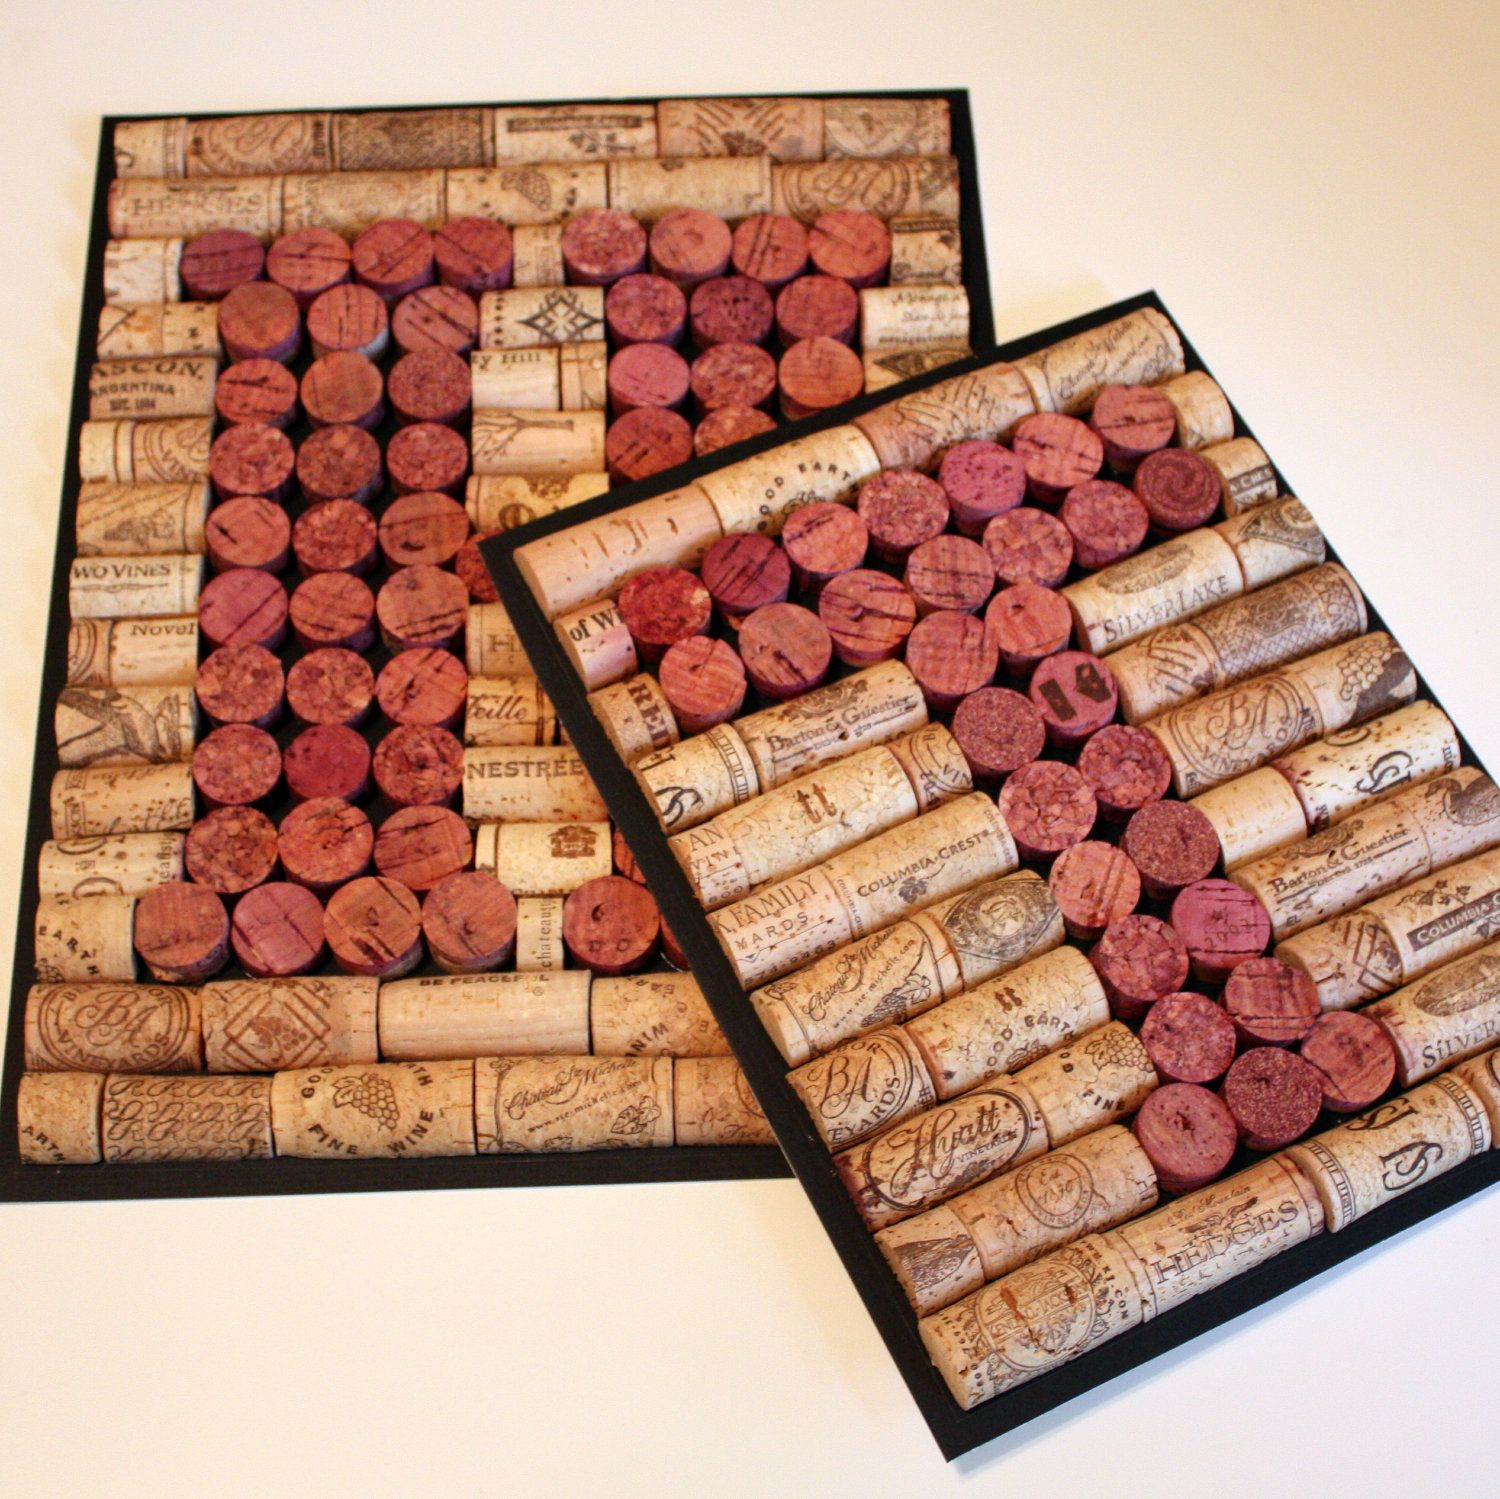 Pin By Kali Higgins On Crafts I Want To Try Wine Cork Crafts Wine Cork Diy Crafts Wine Cork Diy